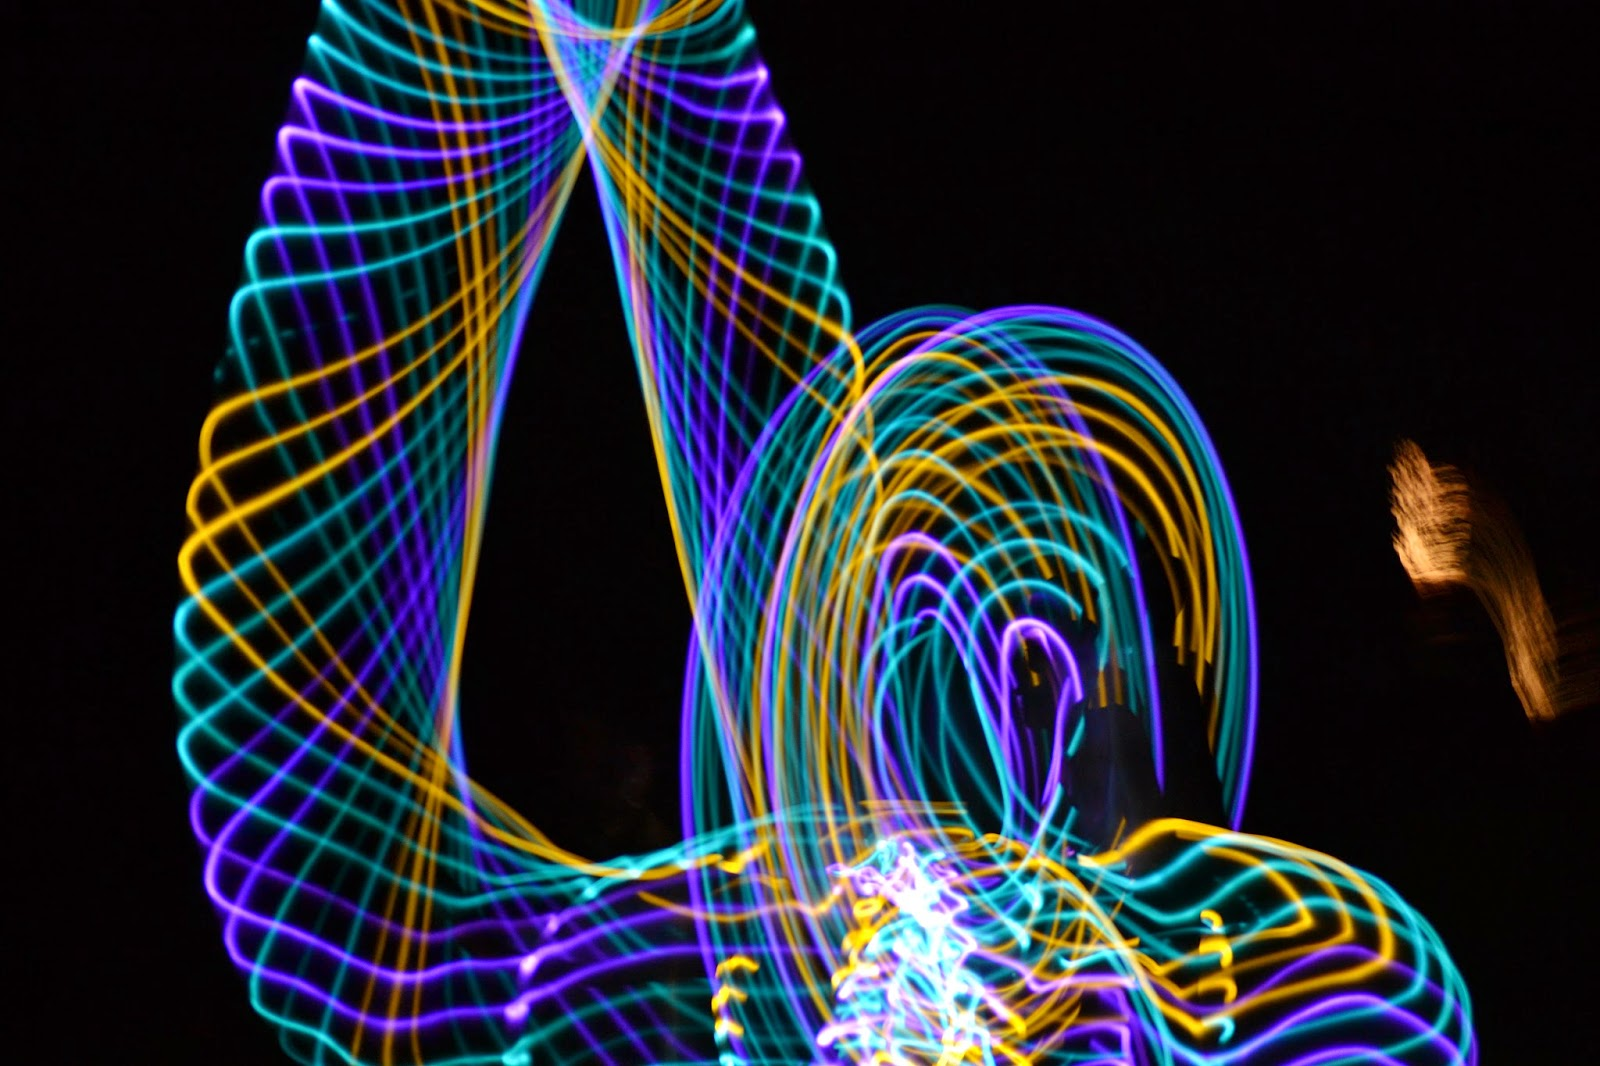 LED Hula Hoop Movement